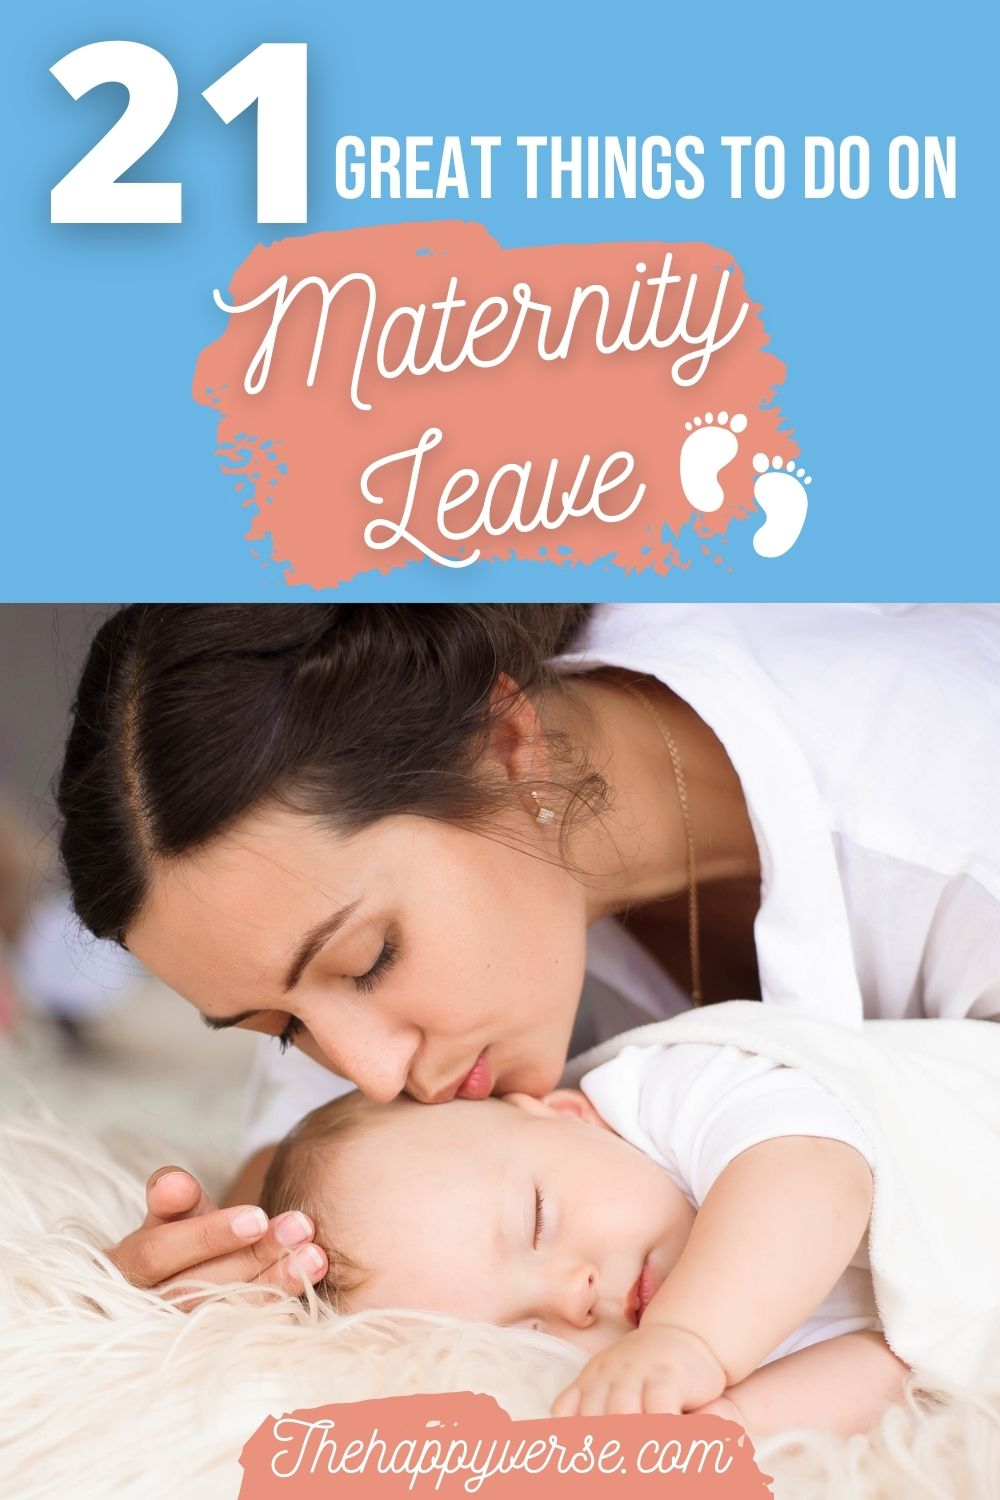 21 Great Things To Do On Maternity Leave